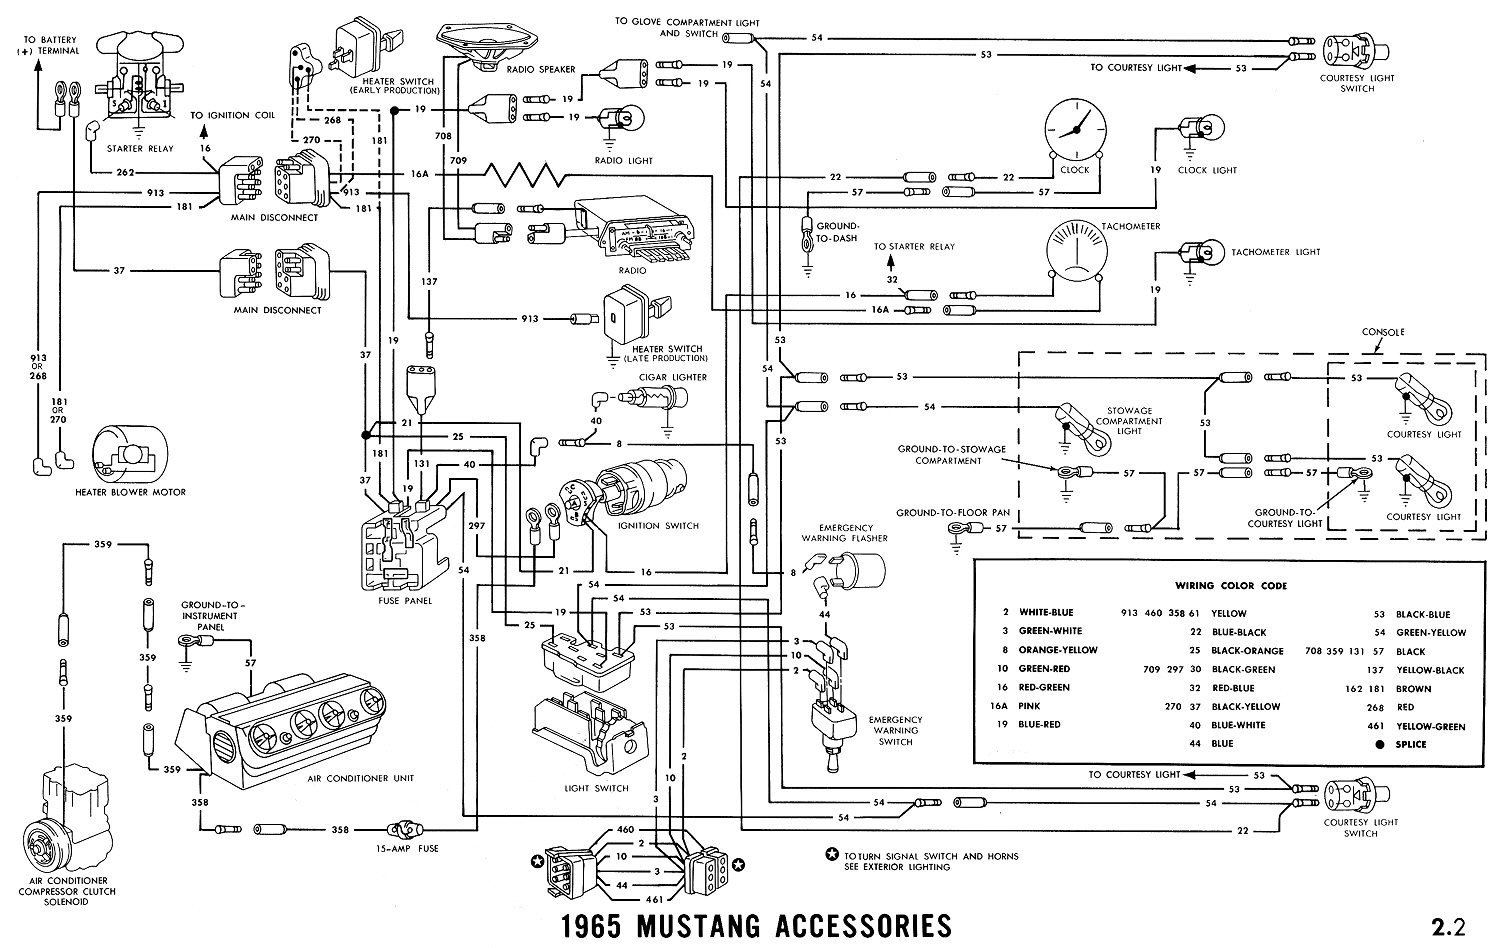 1965i 1965 mustang wiring diagrams average joe restoration 1968 mustang turn signal wiring diagram at edmiracle.co